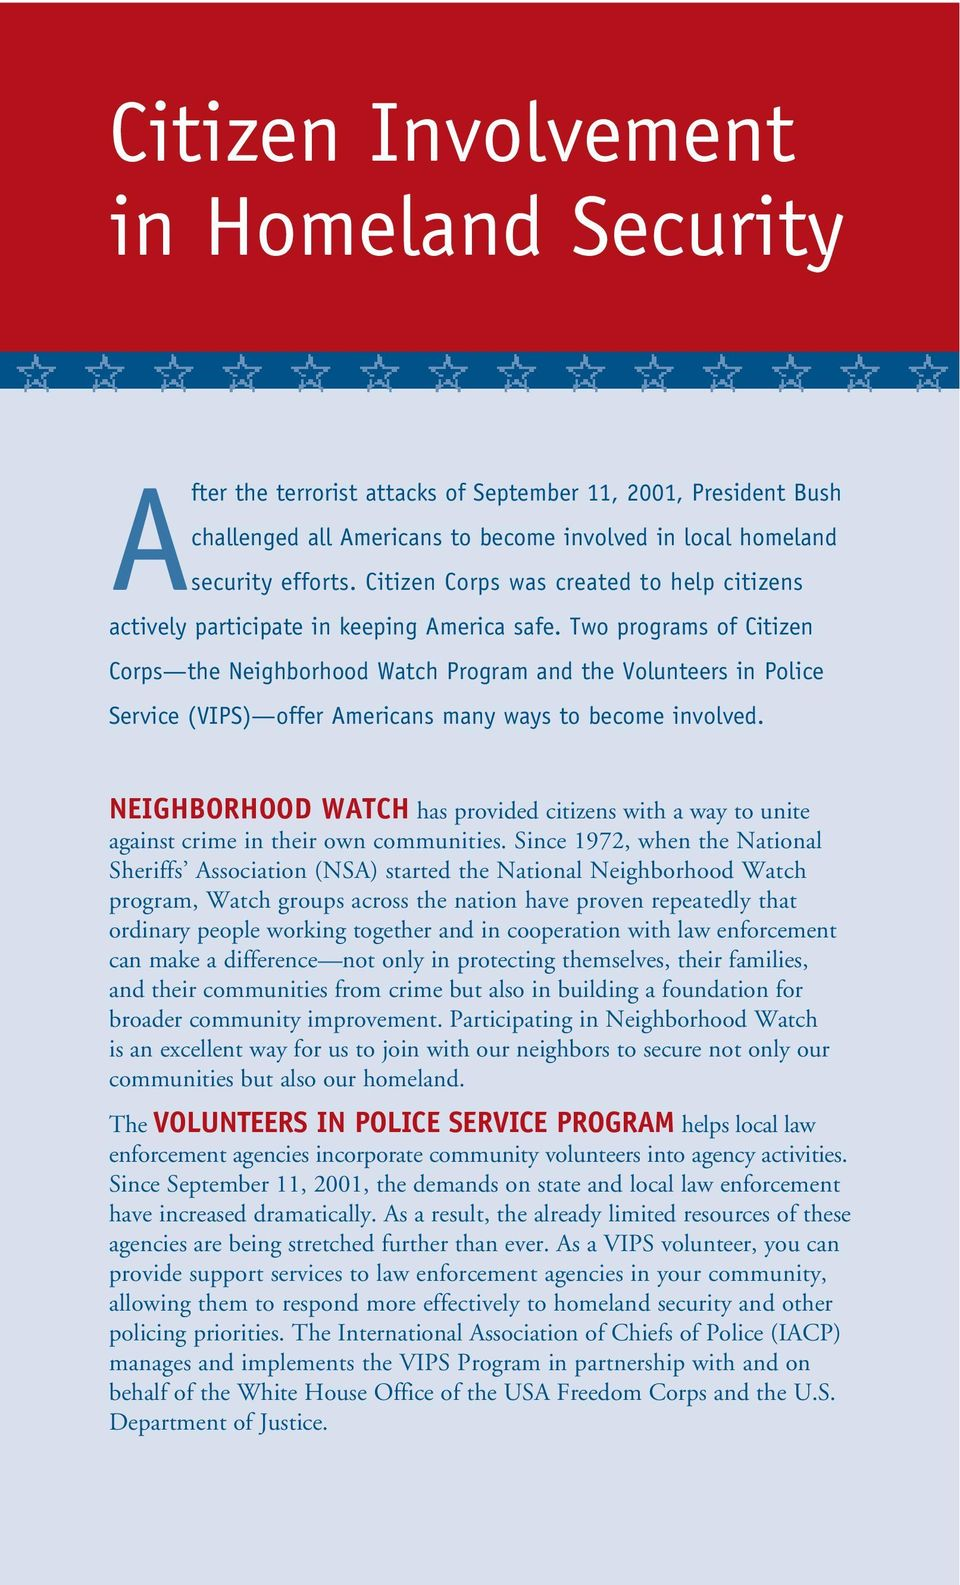 Two programs of Citizen Corps the Neighborhood Watch Program and the Volunteers in Police Service (VIPS) offer Americans many ways to become involved.